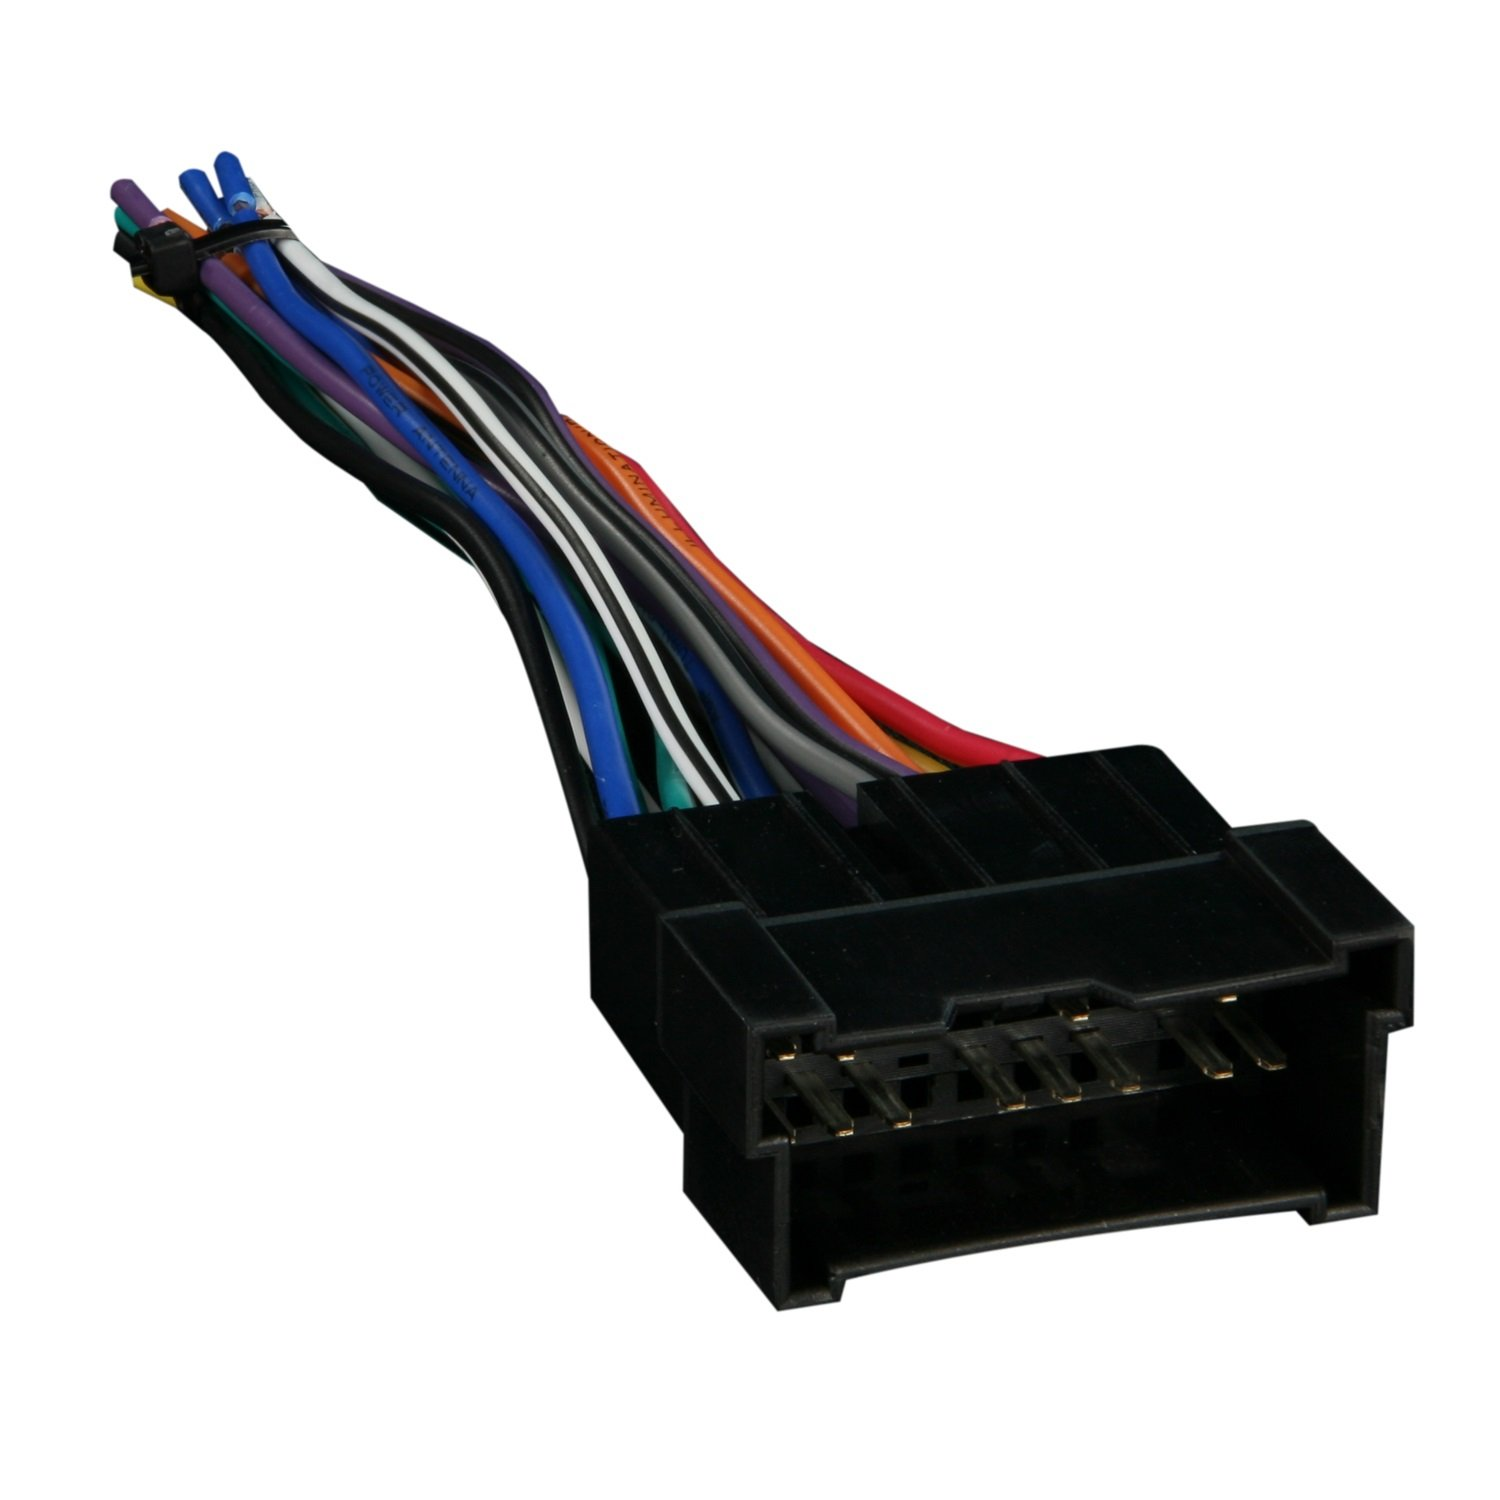 617yeBmOquL._SL1500_ amazon com metra 70 7301 radio wiring harness for hyundai kia 99  at bayanpartner.co